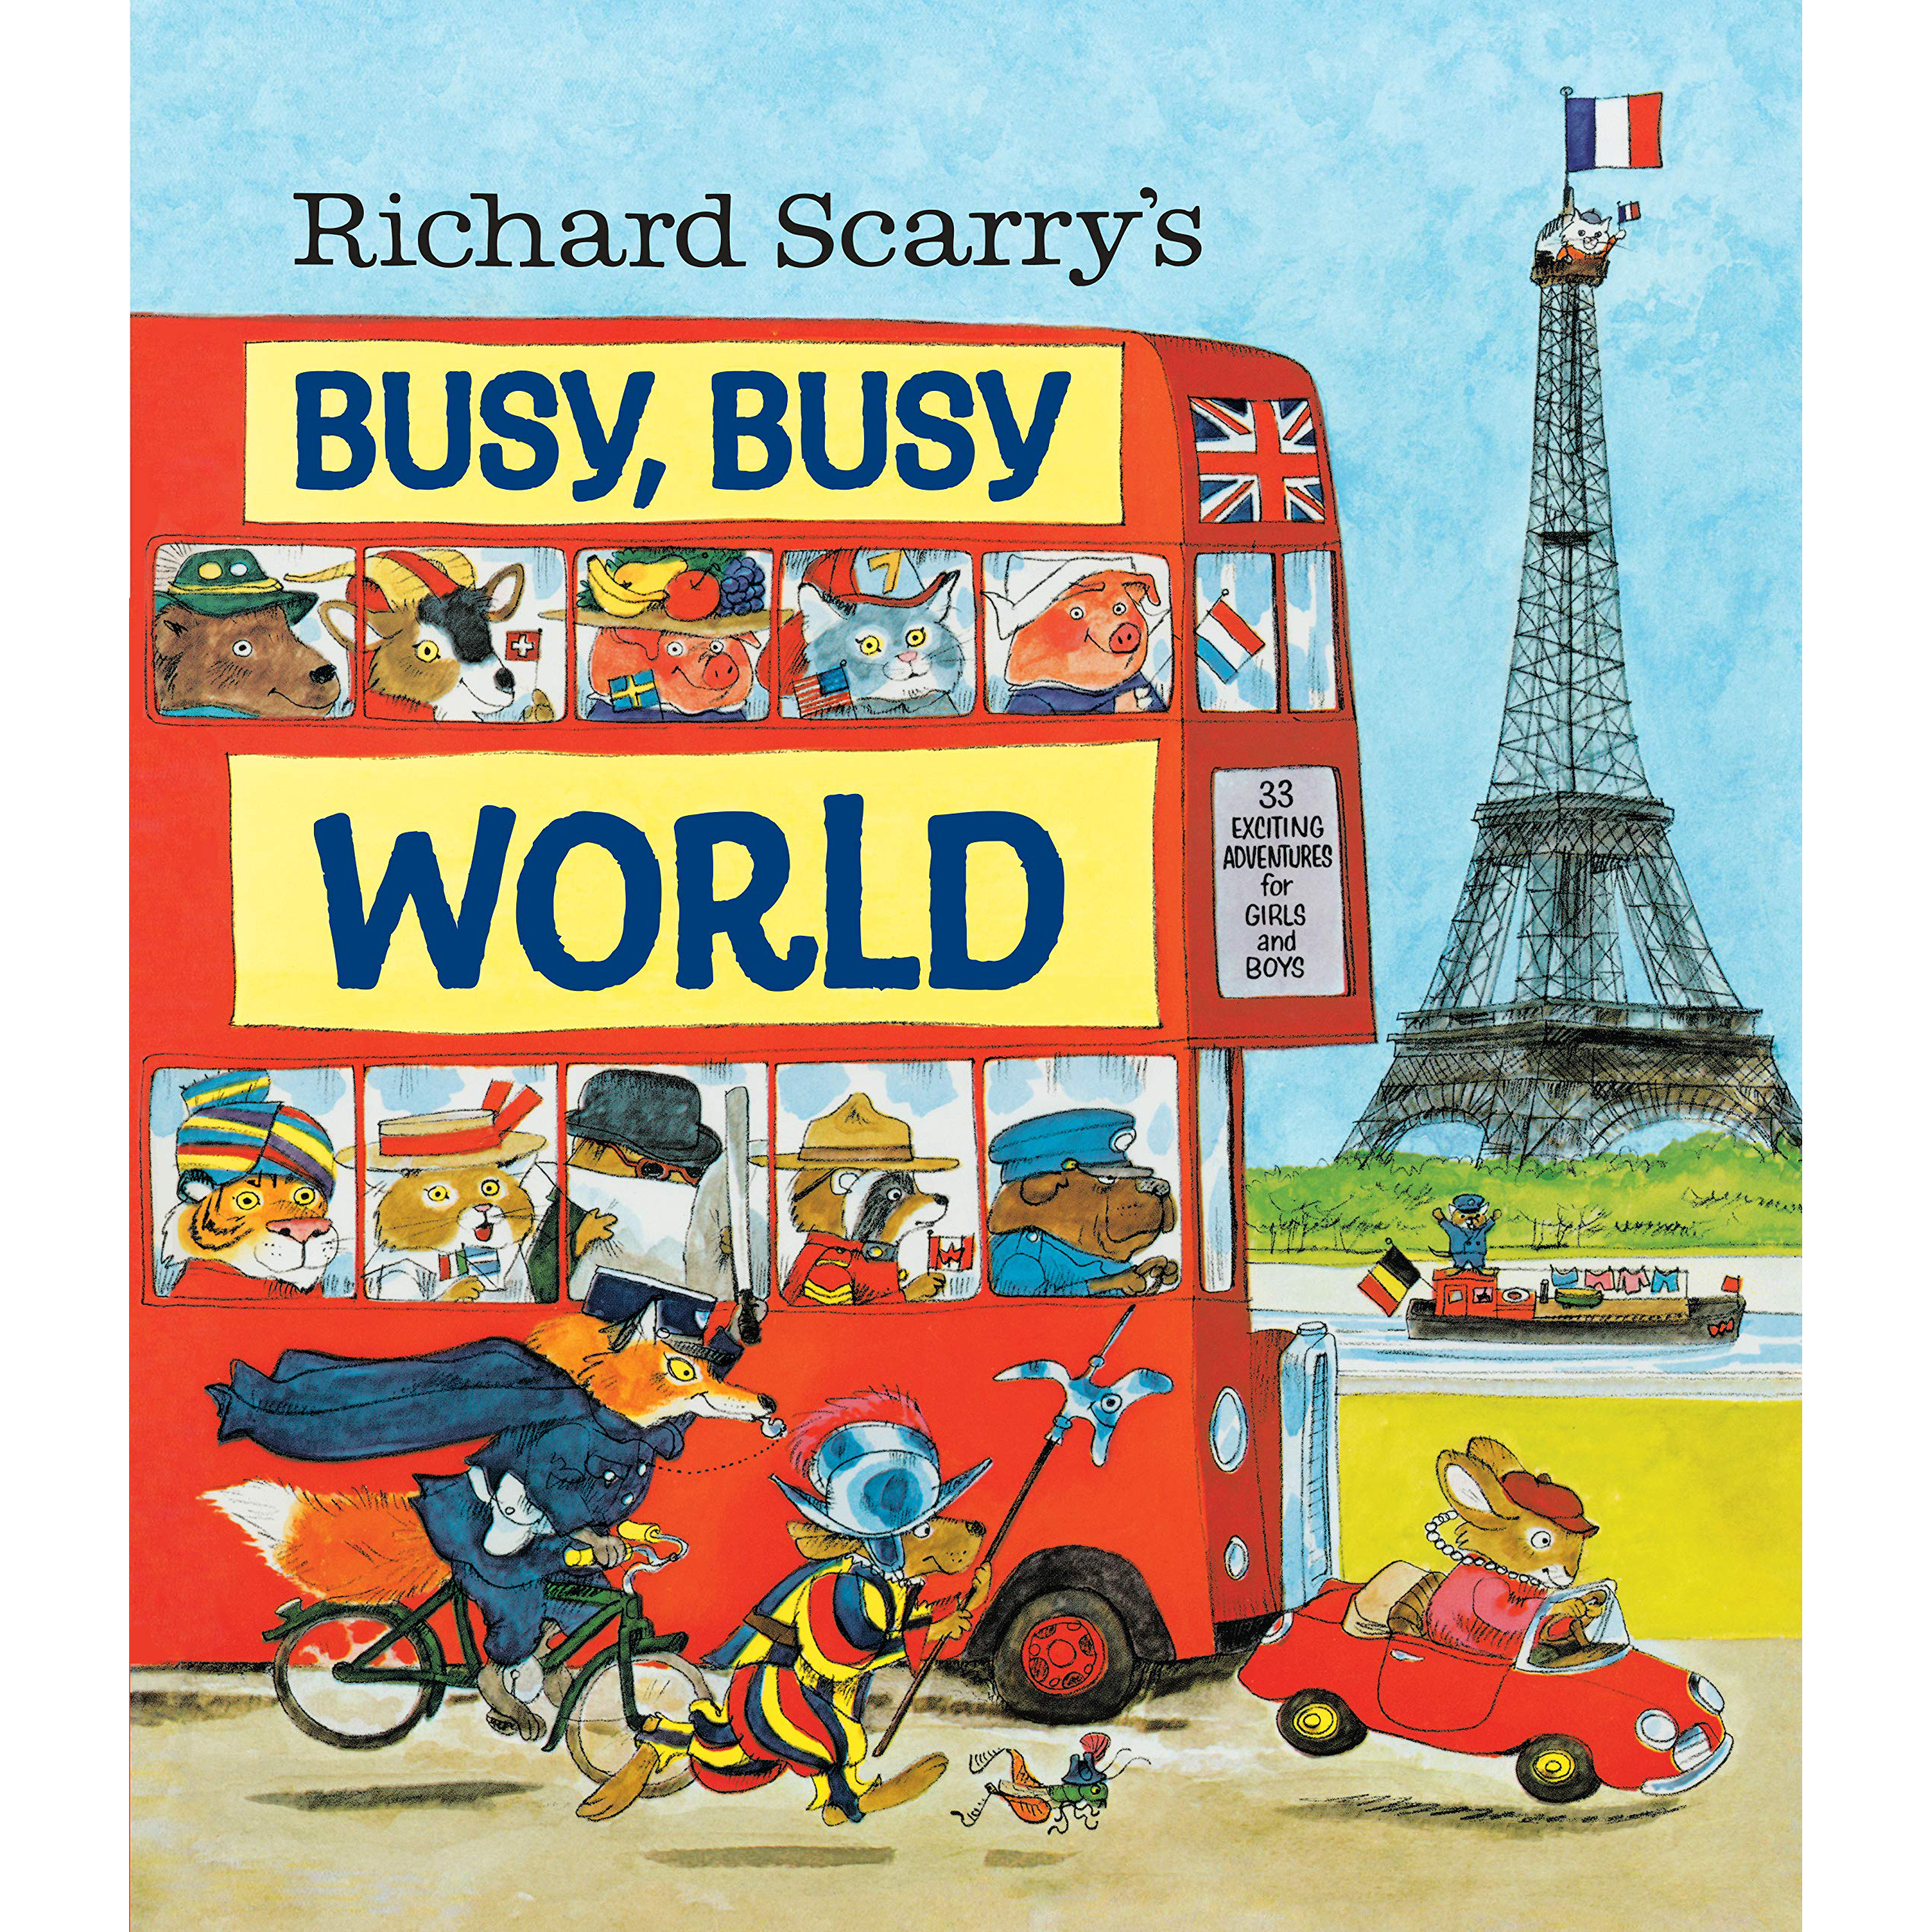 Richards Scarry's Busy,Busy World 1